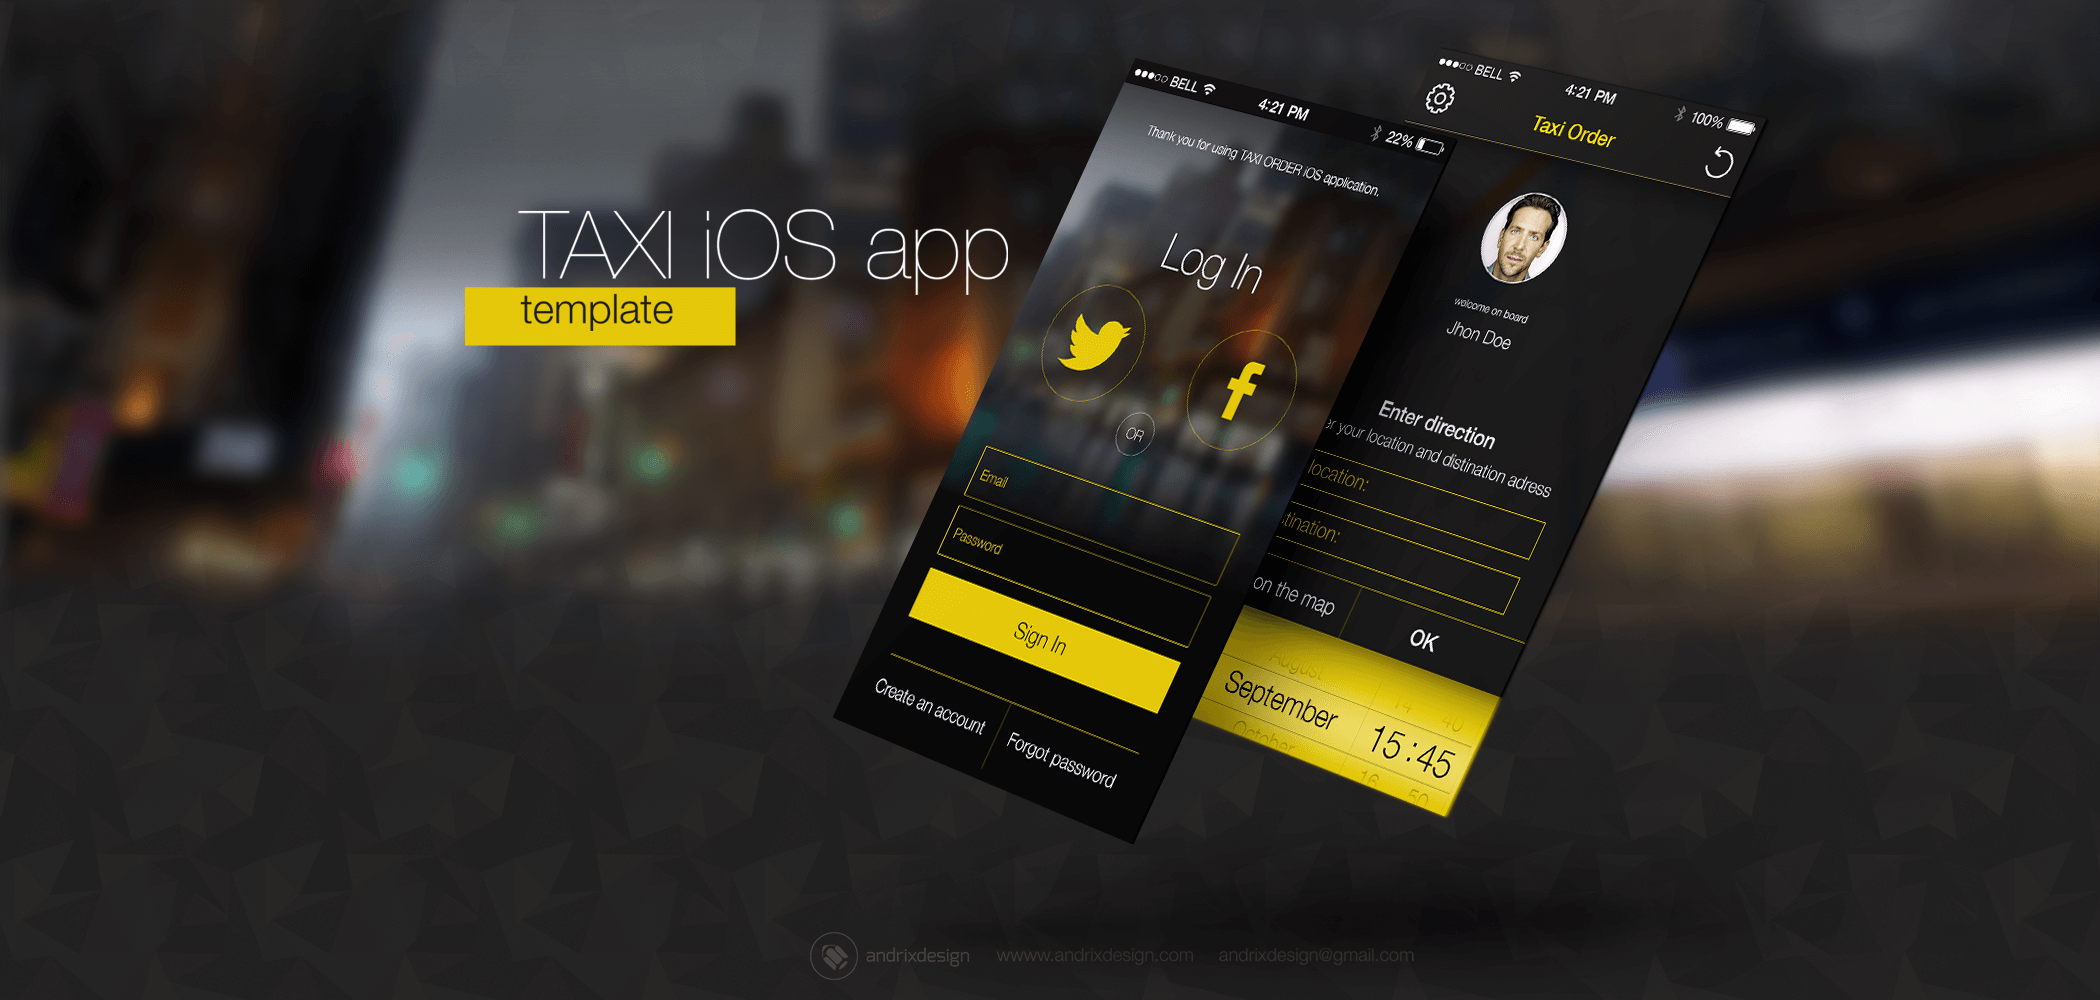 The Taxi mobile application design